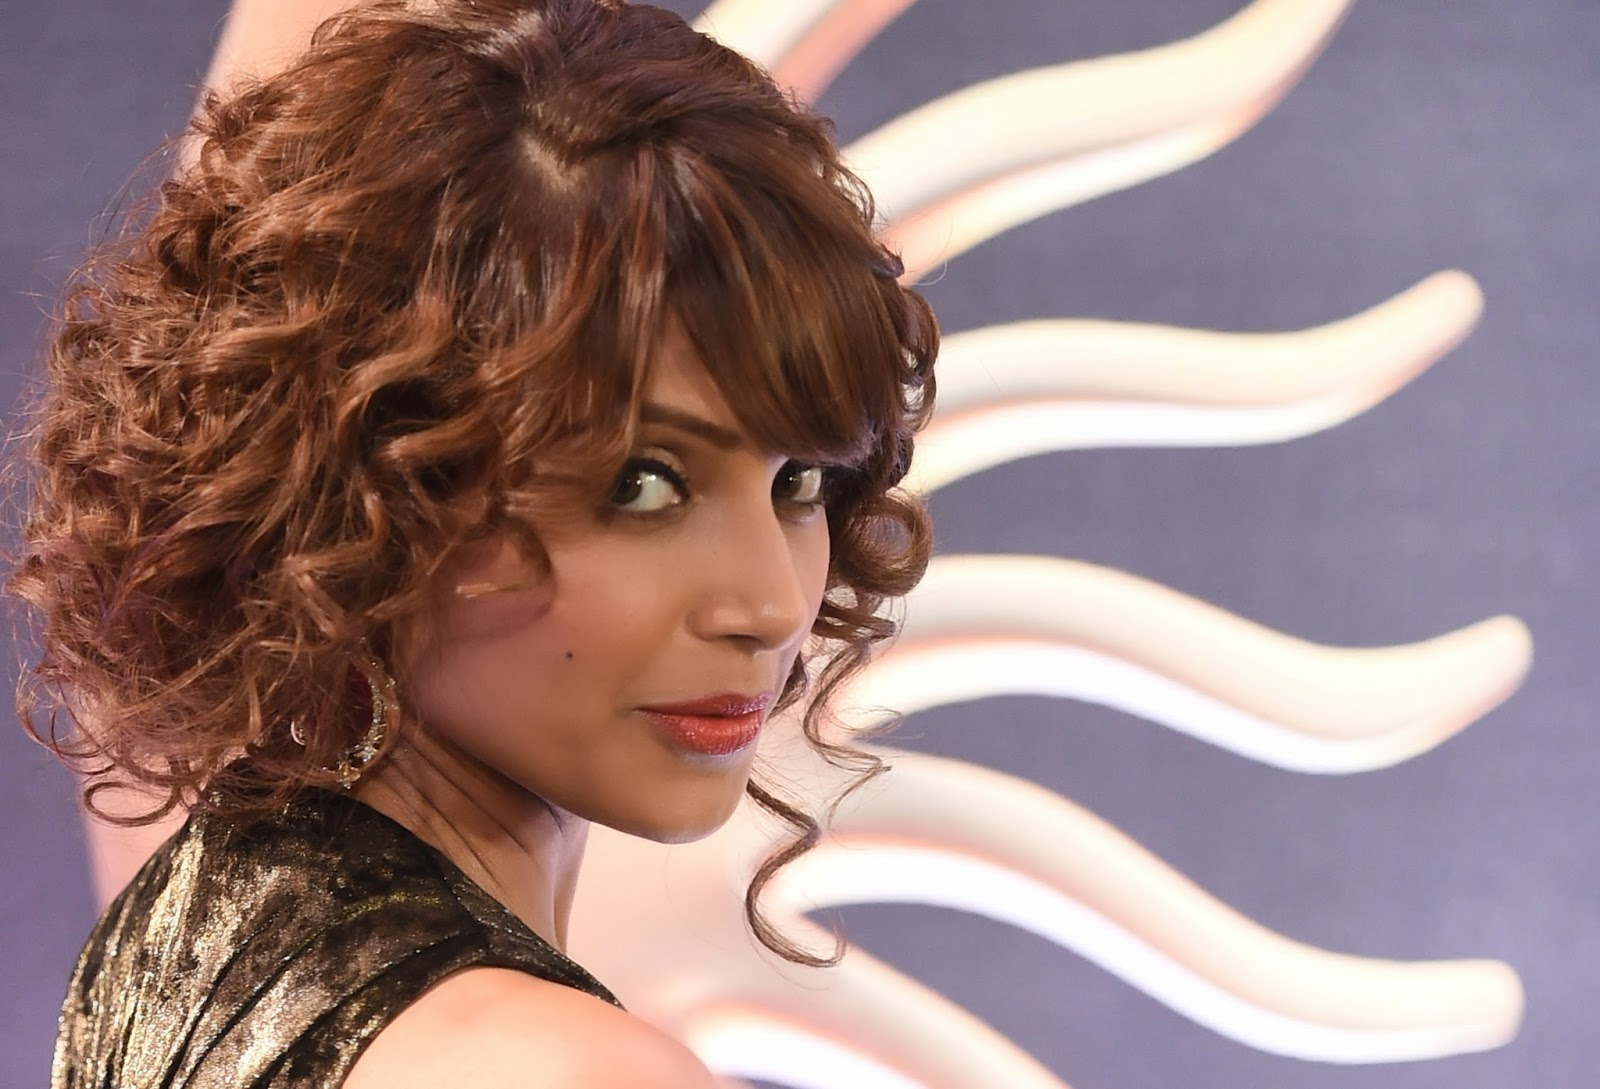 2014 IIFA Awards, Actress, Award Show, Bipasha Basu, Bipasha Basu Pictures, Bollywood, Bollywood actress, Entertainment, IIFA, IIFA Awards, IIFA Pictures, IIFA Rocks, International Indian Film Academy, Tampa,